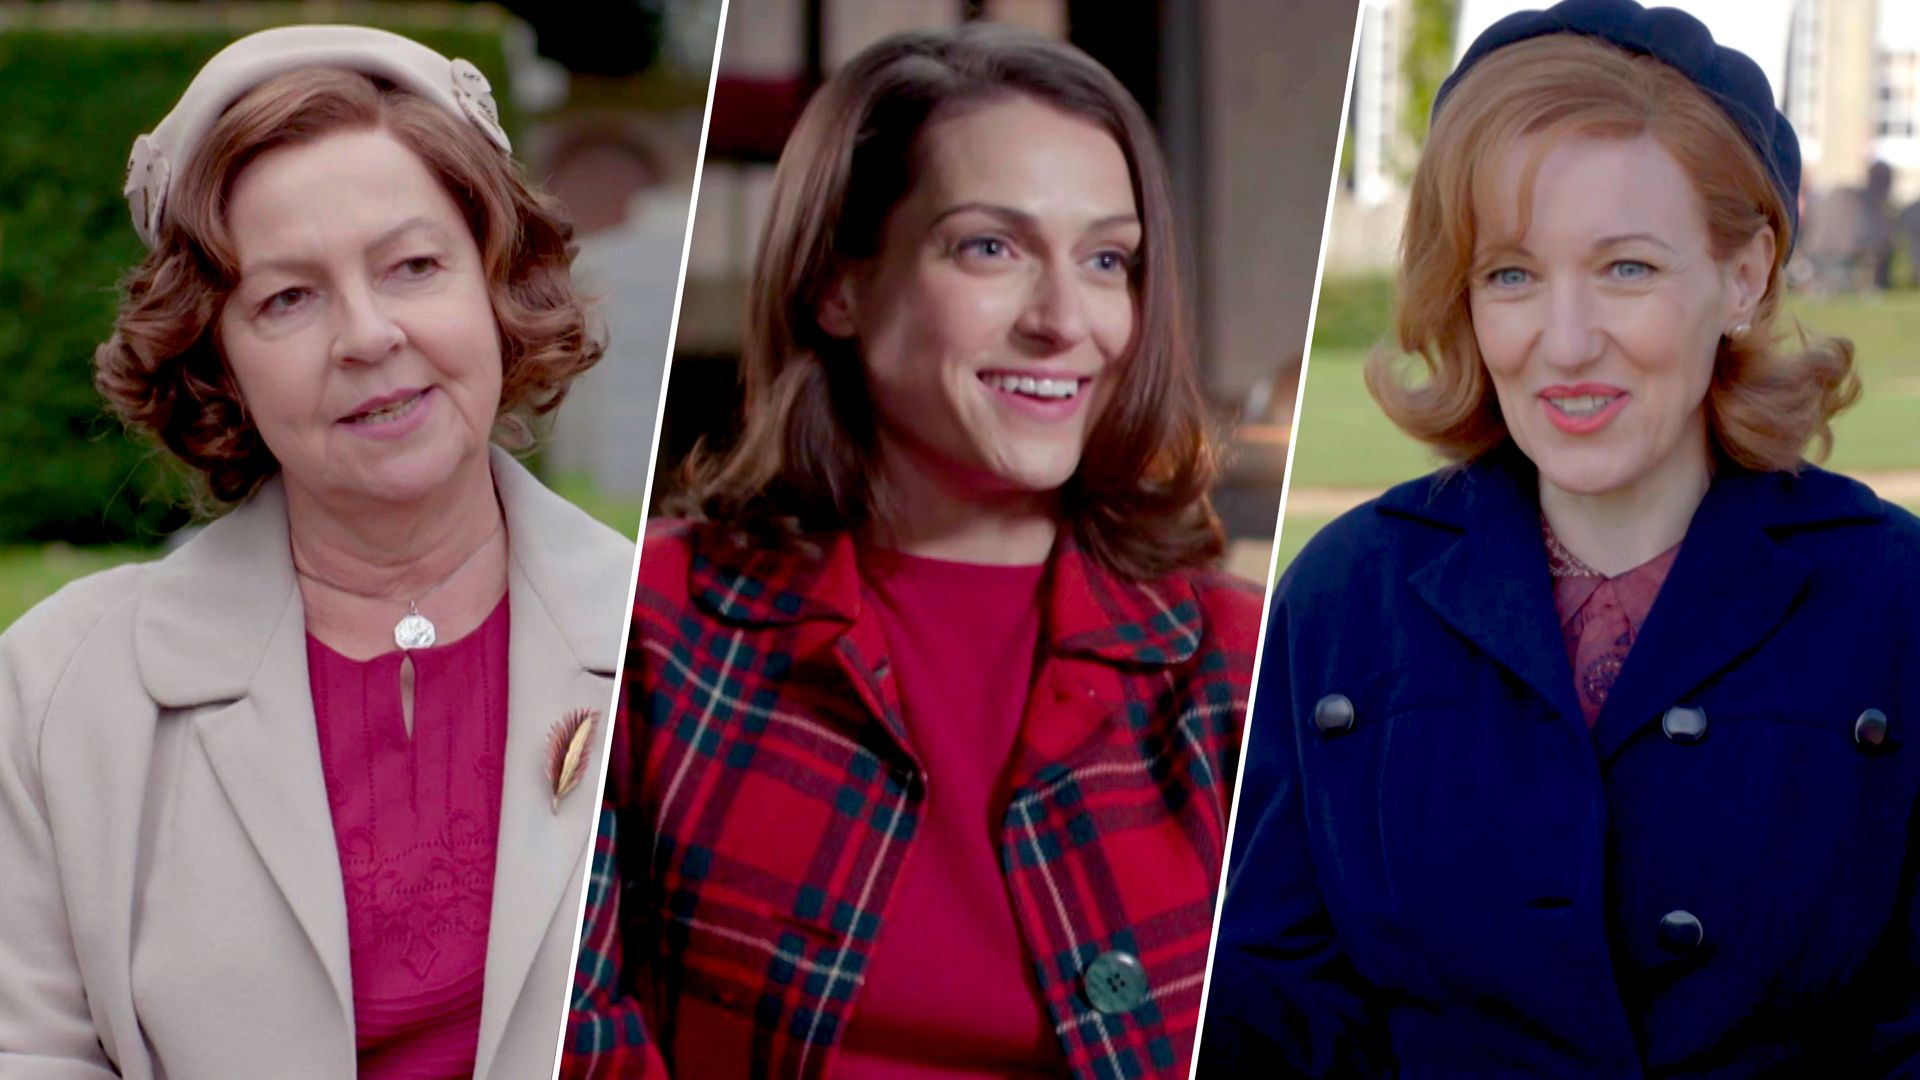 Tessa Peake-Jones, Lauren Carse and Kacey Ainsworth share advice for Grantchester characters